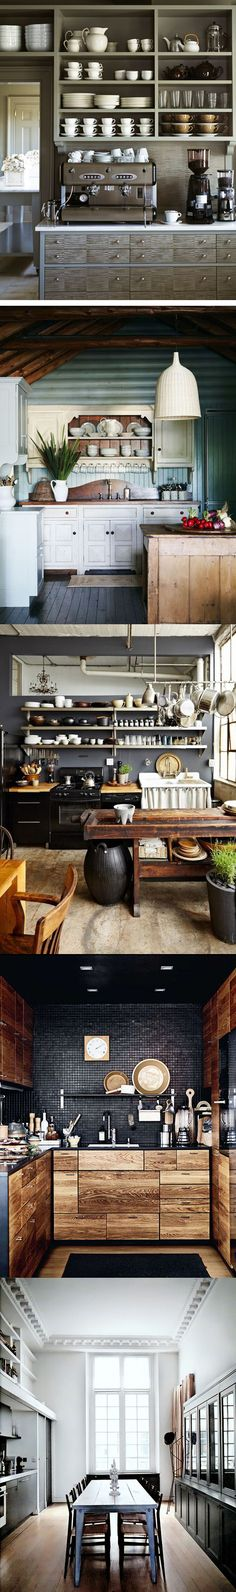 kitchens-five-beekman